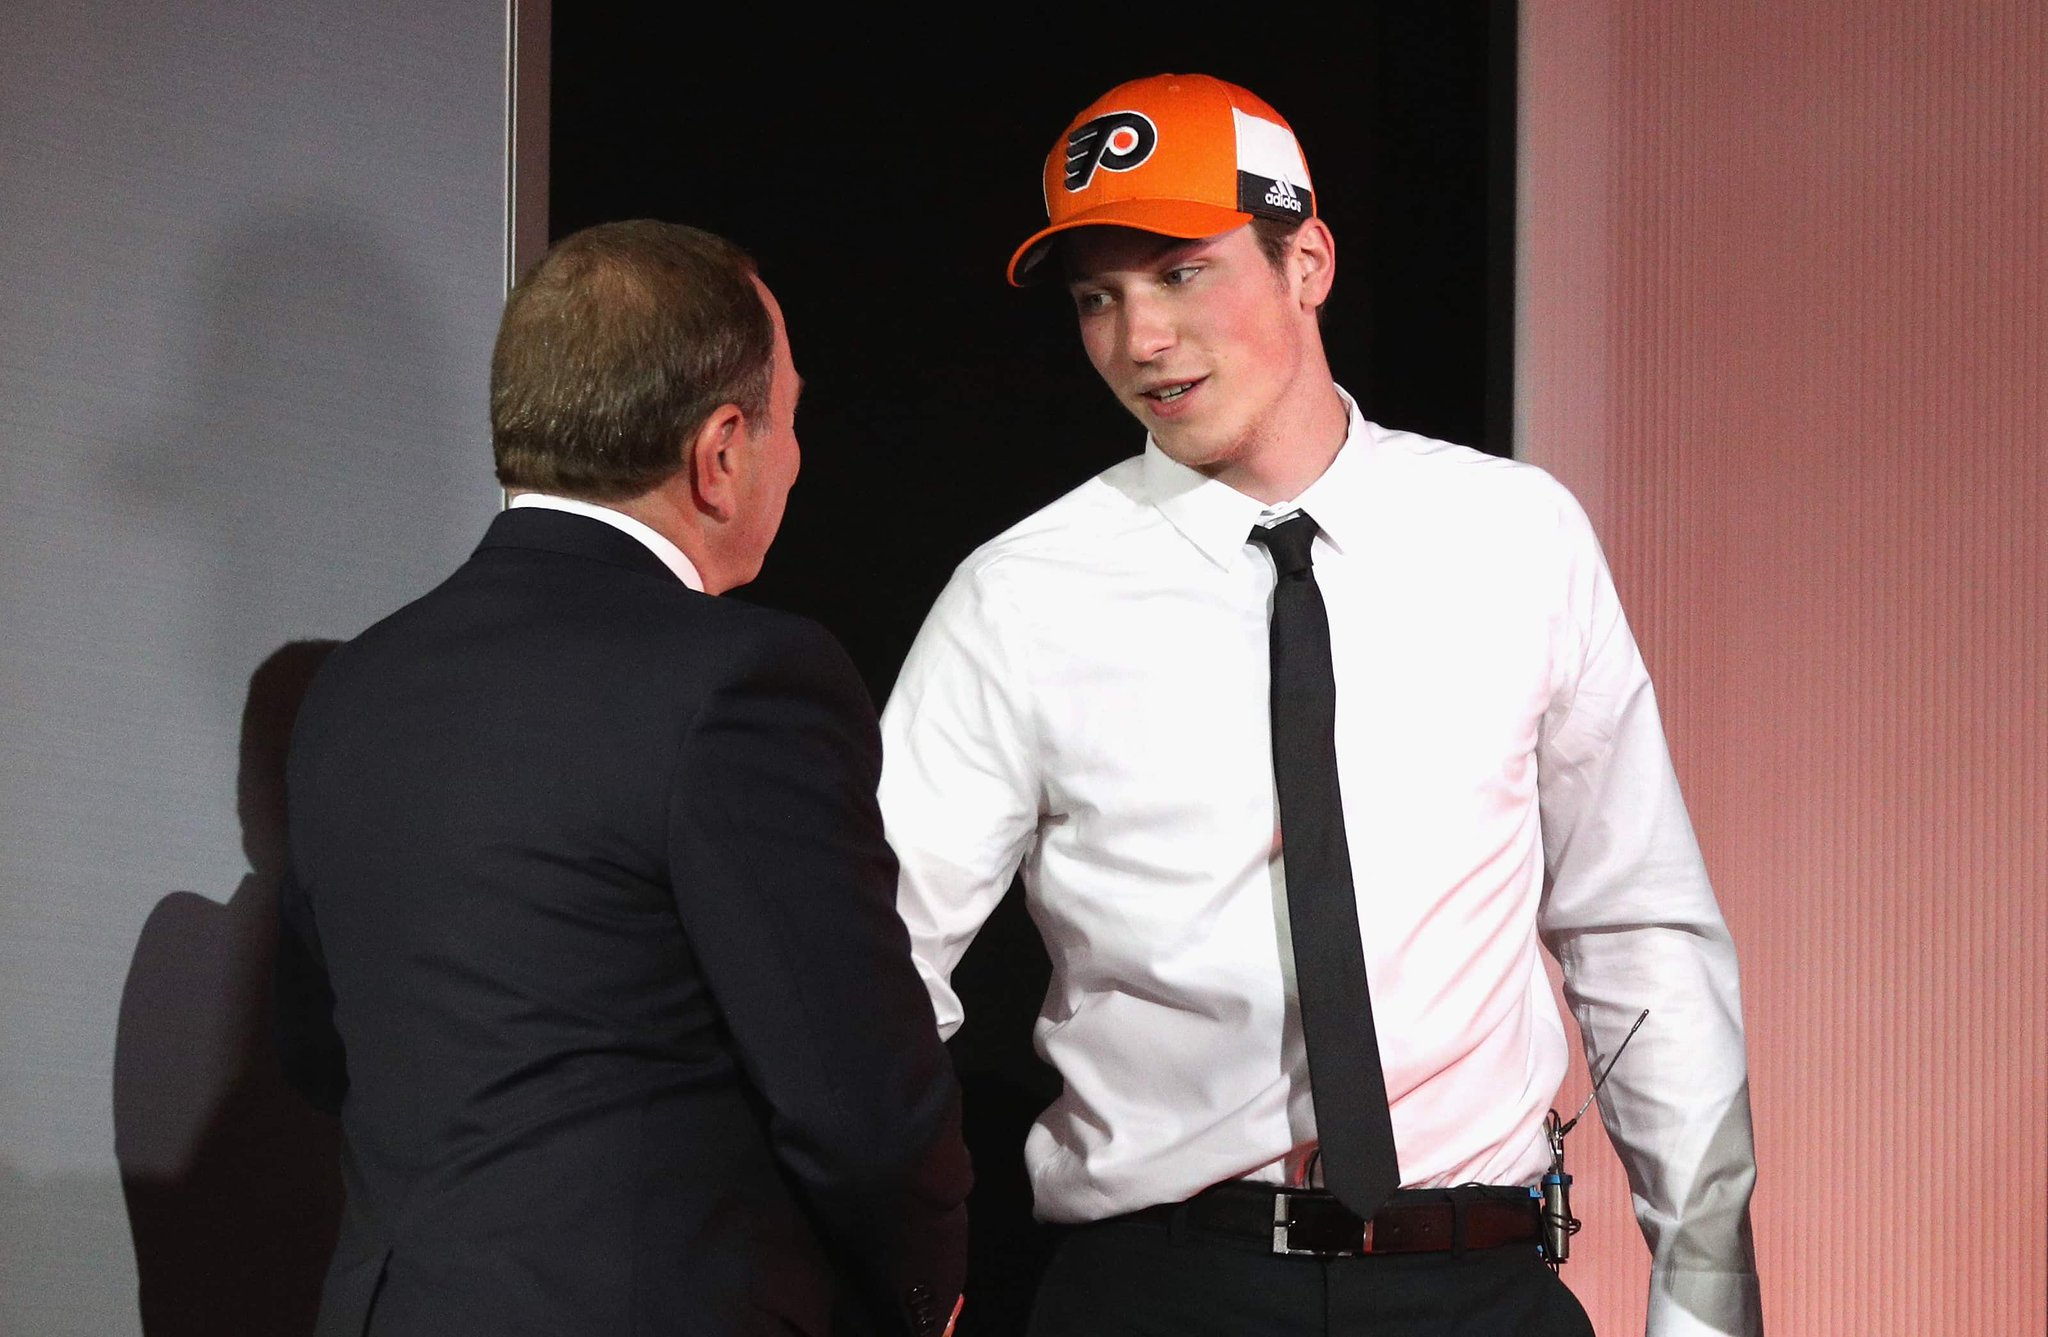 Will Nolan Patrick make the #Flyers NHL roster this upcoming season? https://t.co/yZZkzOjELN via @ericesponda https://t.co/TVbaH7QNS3